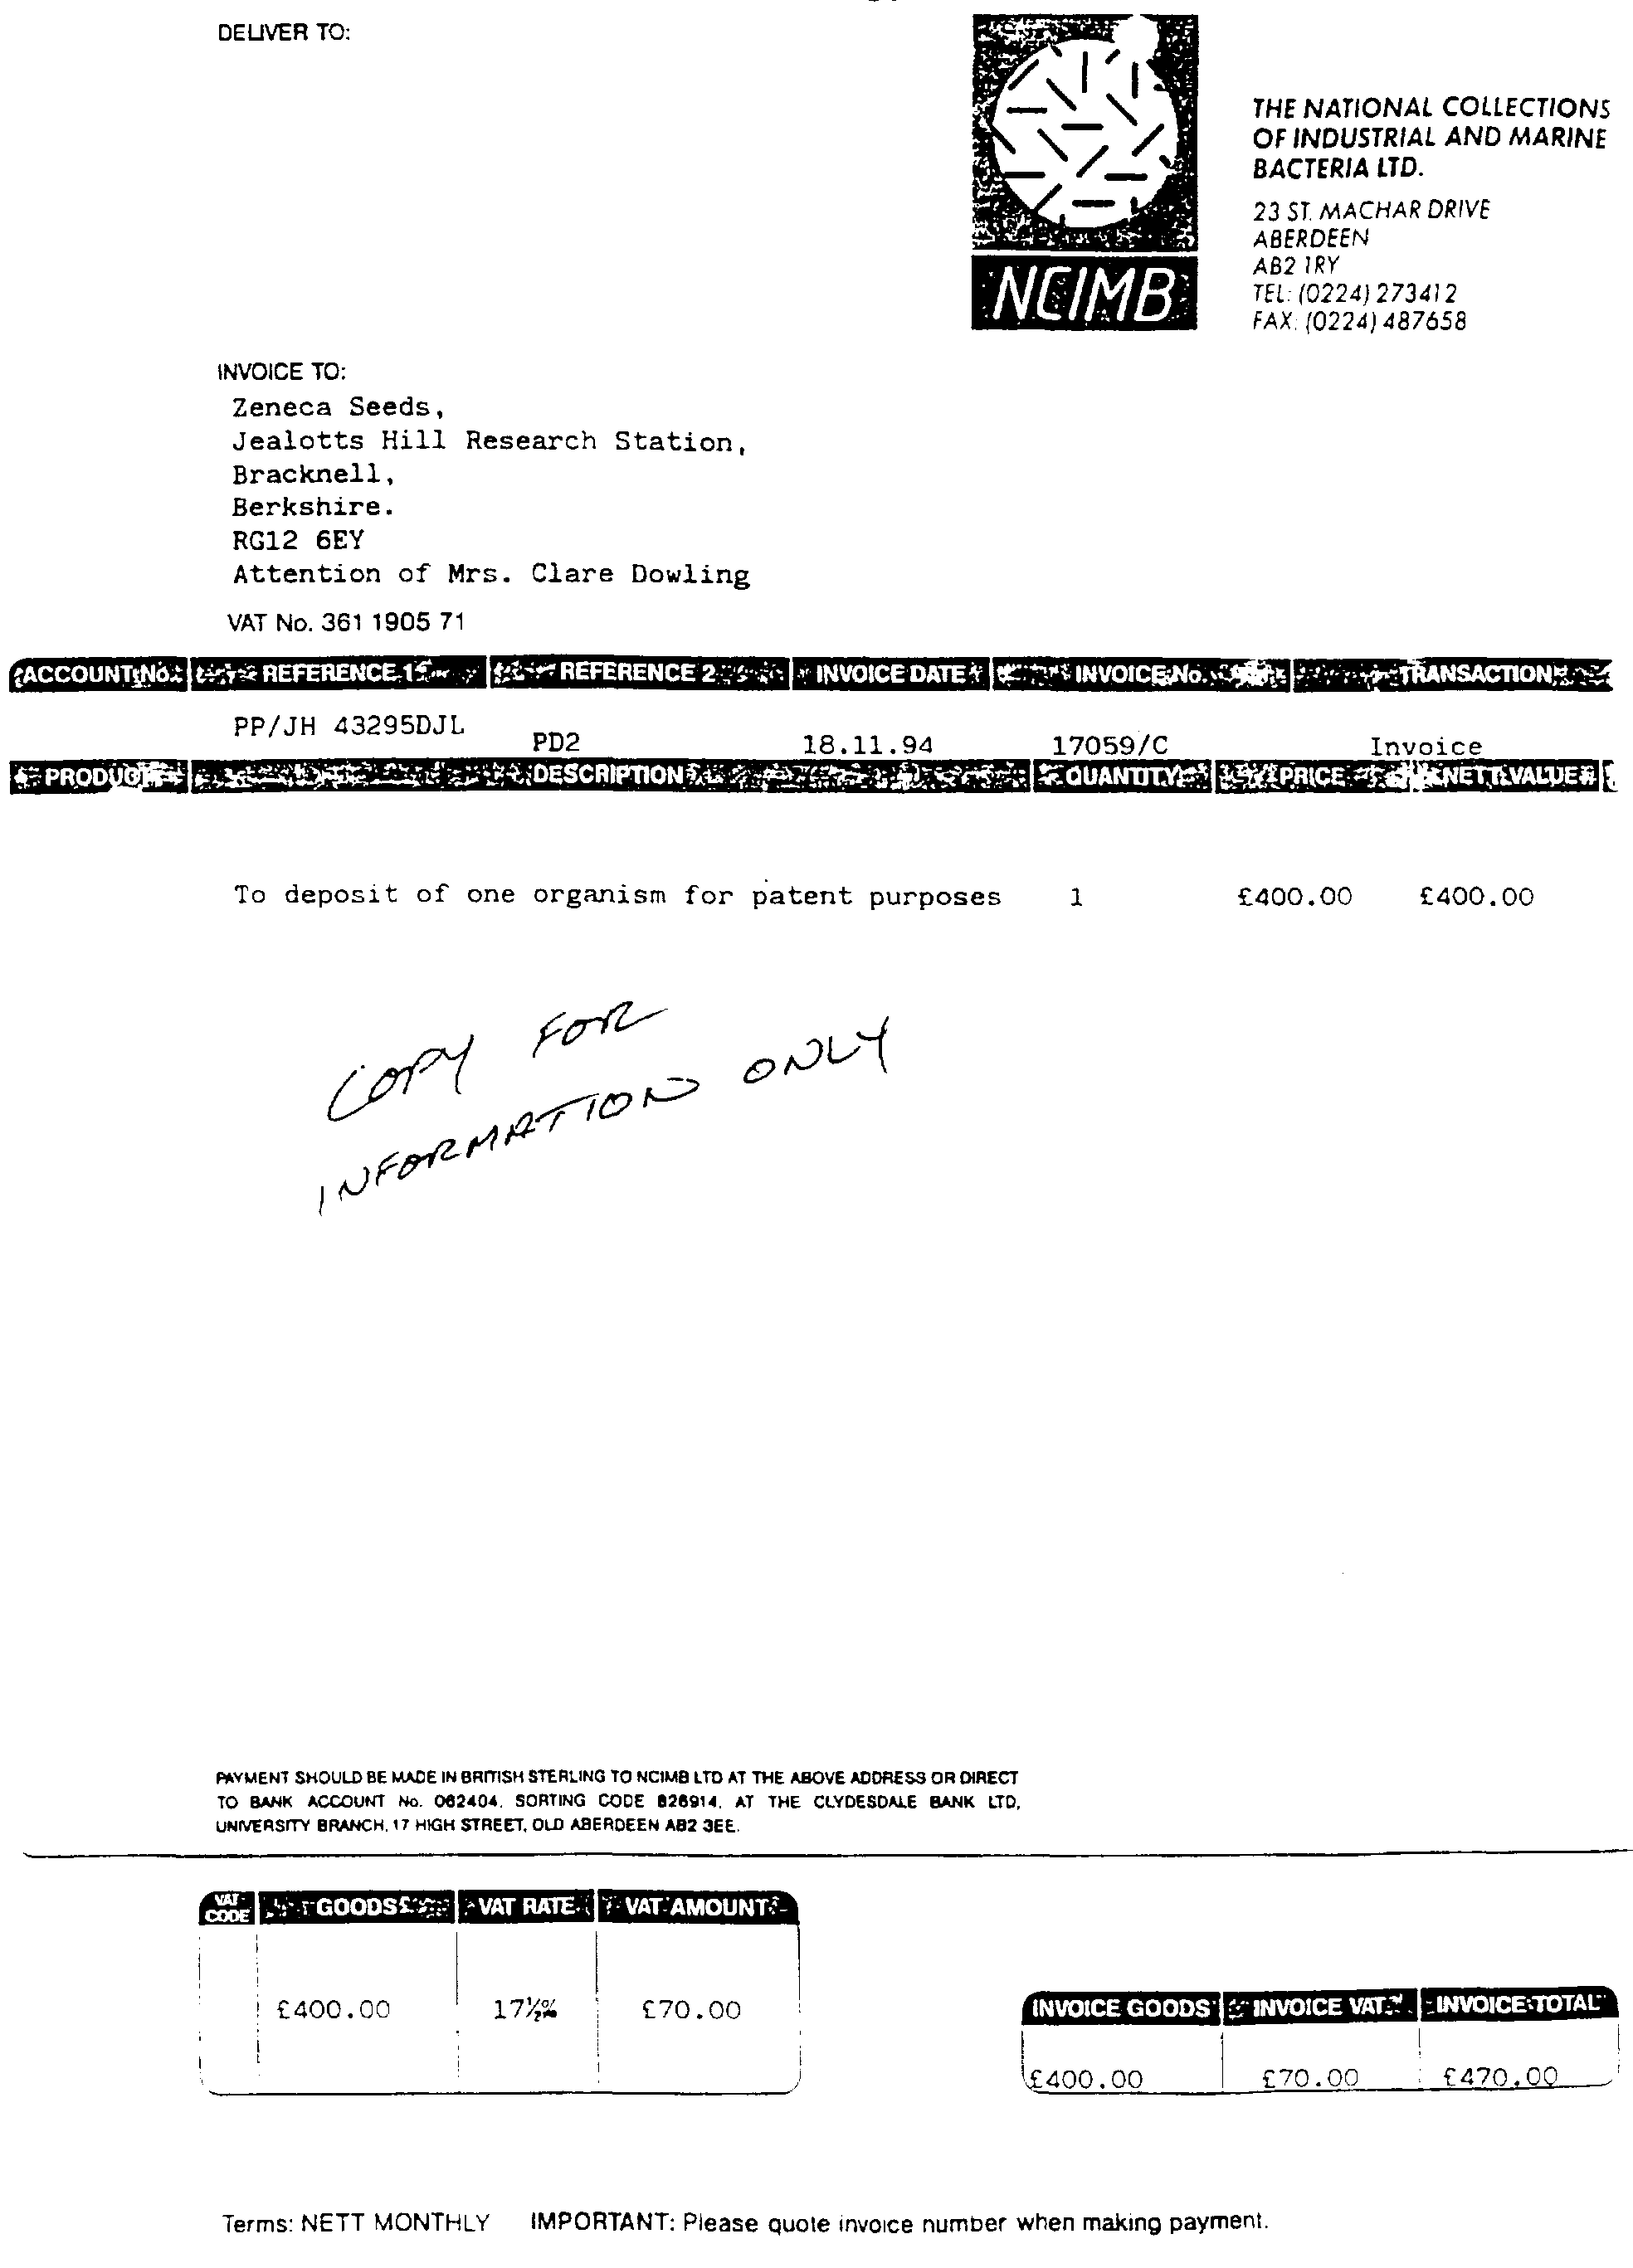 Example Of Commercial Invoice Word Patent Woa  Genetic Control Of Fruit Ripening  Google  How To Write A Cash Receipt with Invoice Service Figure Imgf Shipping Receipt Template Excel